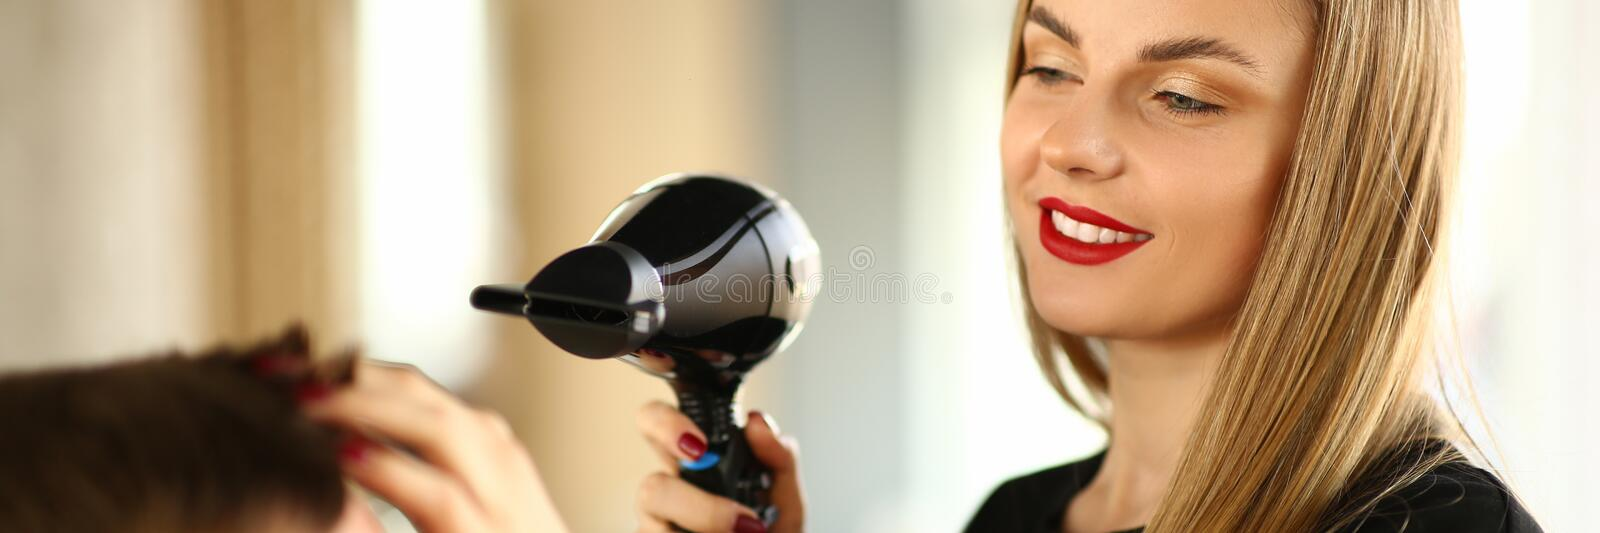 Woman Hairdresser Drying Male Hair with Hairdryer. Young Hairstylist Styling Haircut for Man with Dryer. Female Stylist Blowing on Client for Making Hairdo royalty free stock photo